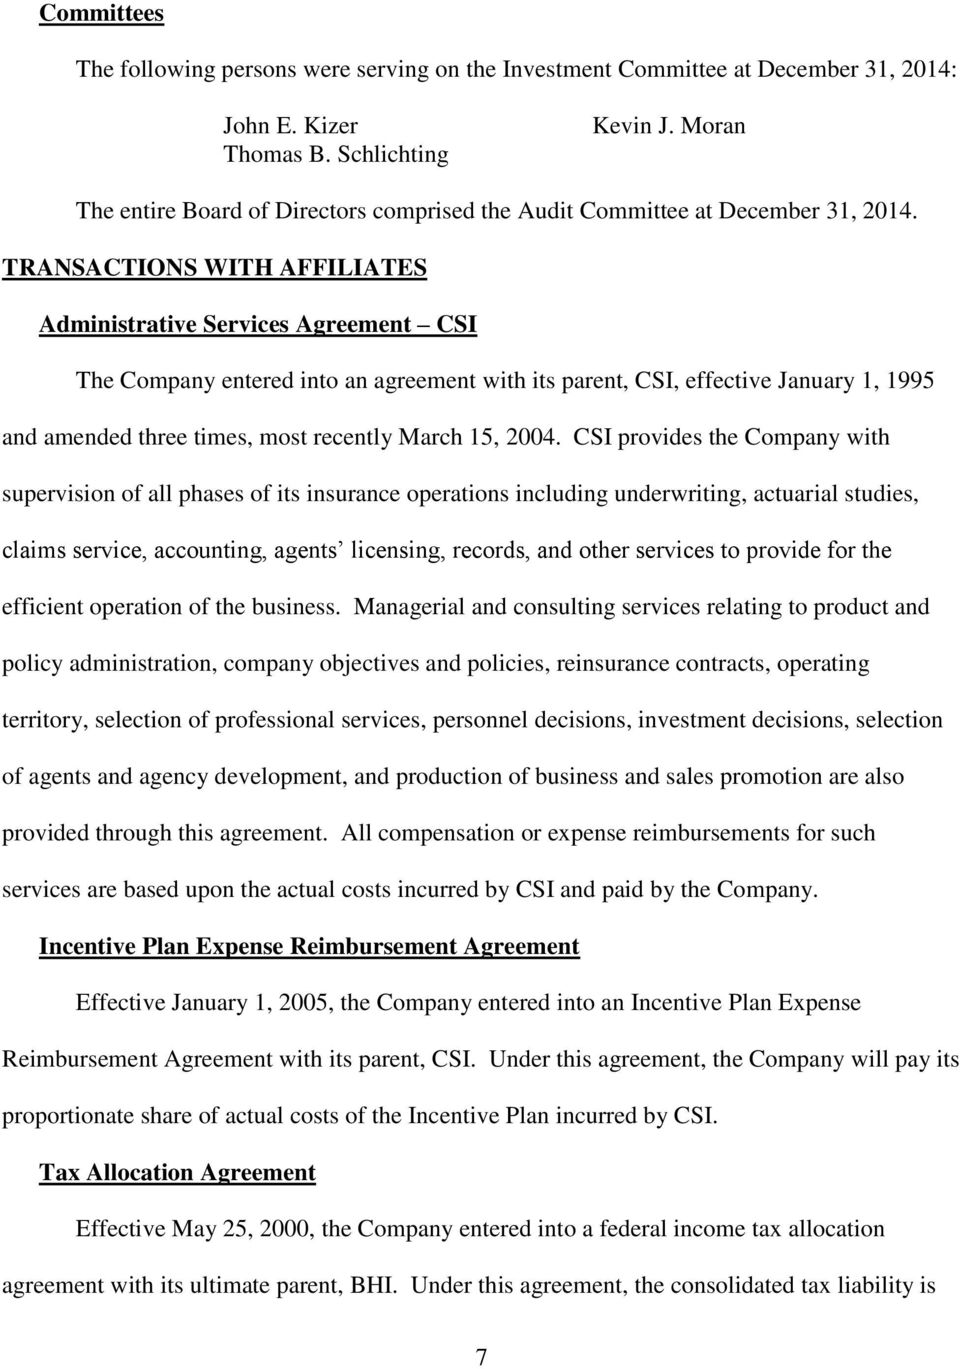 TRANSACTIONS WITH AFFILIATES Administrative Services Agreement CSI The Company entered into an agreement with its parent, CSI, effective January 1, 1995 and amended three times, most recently March